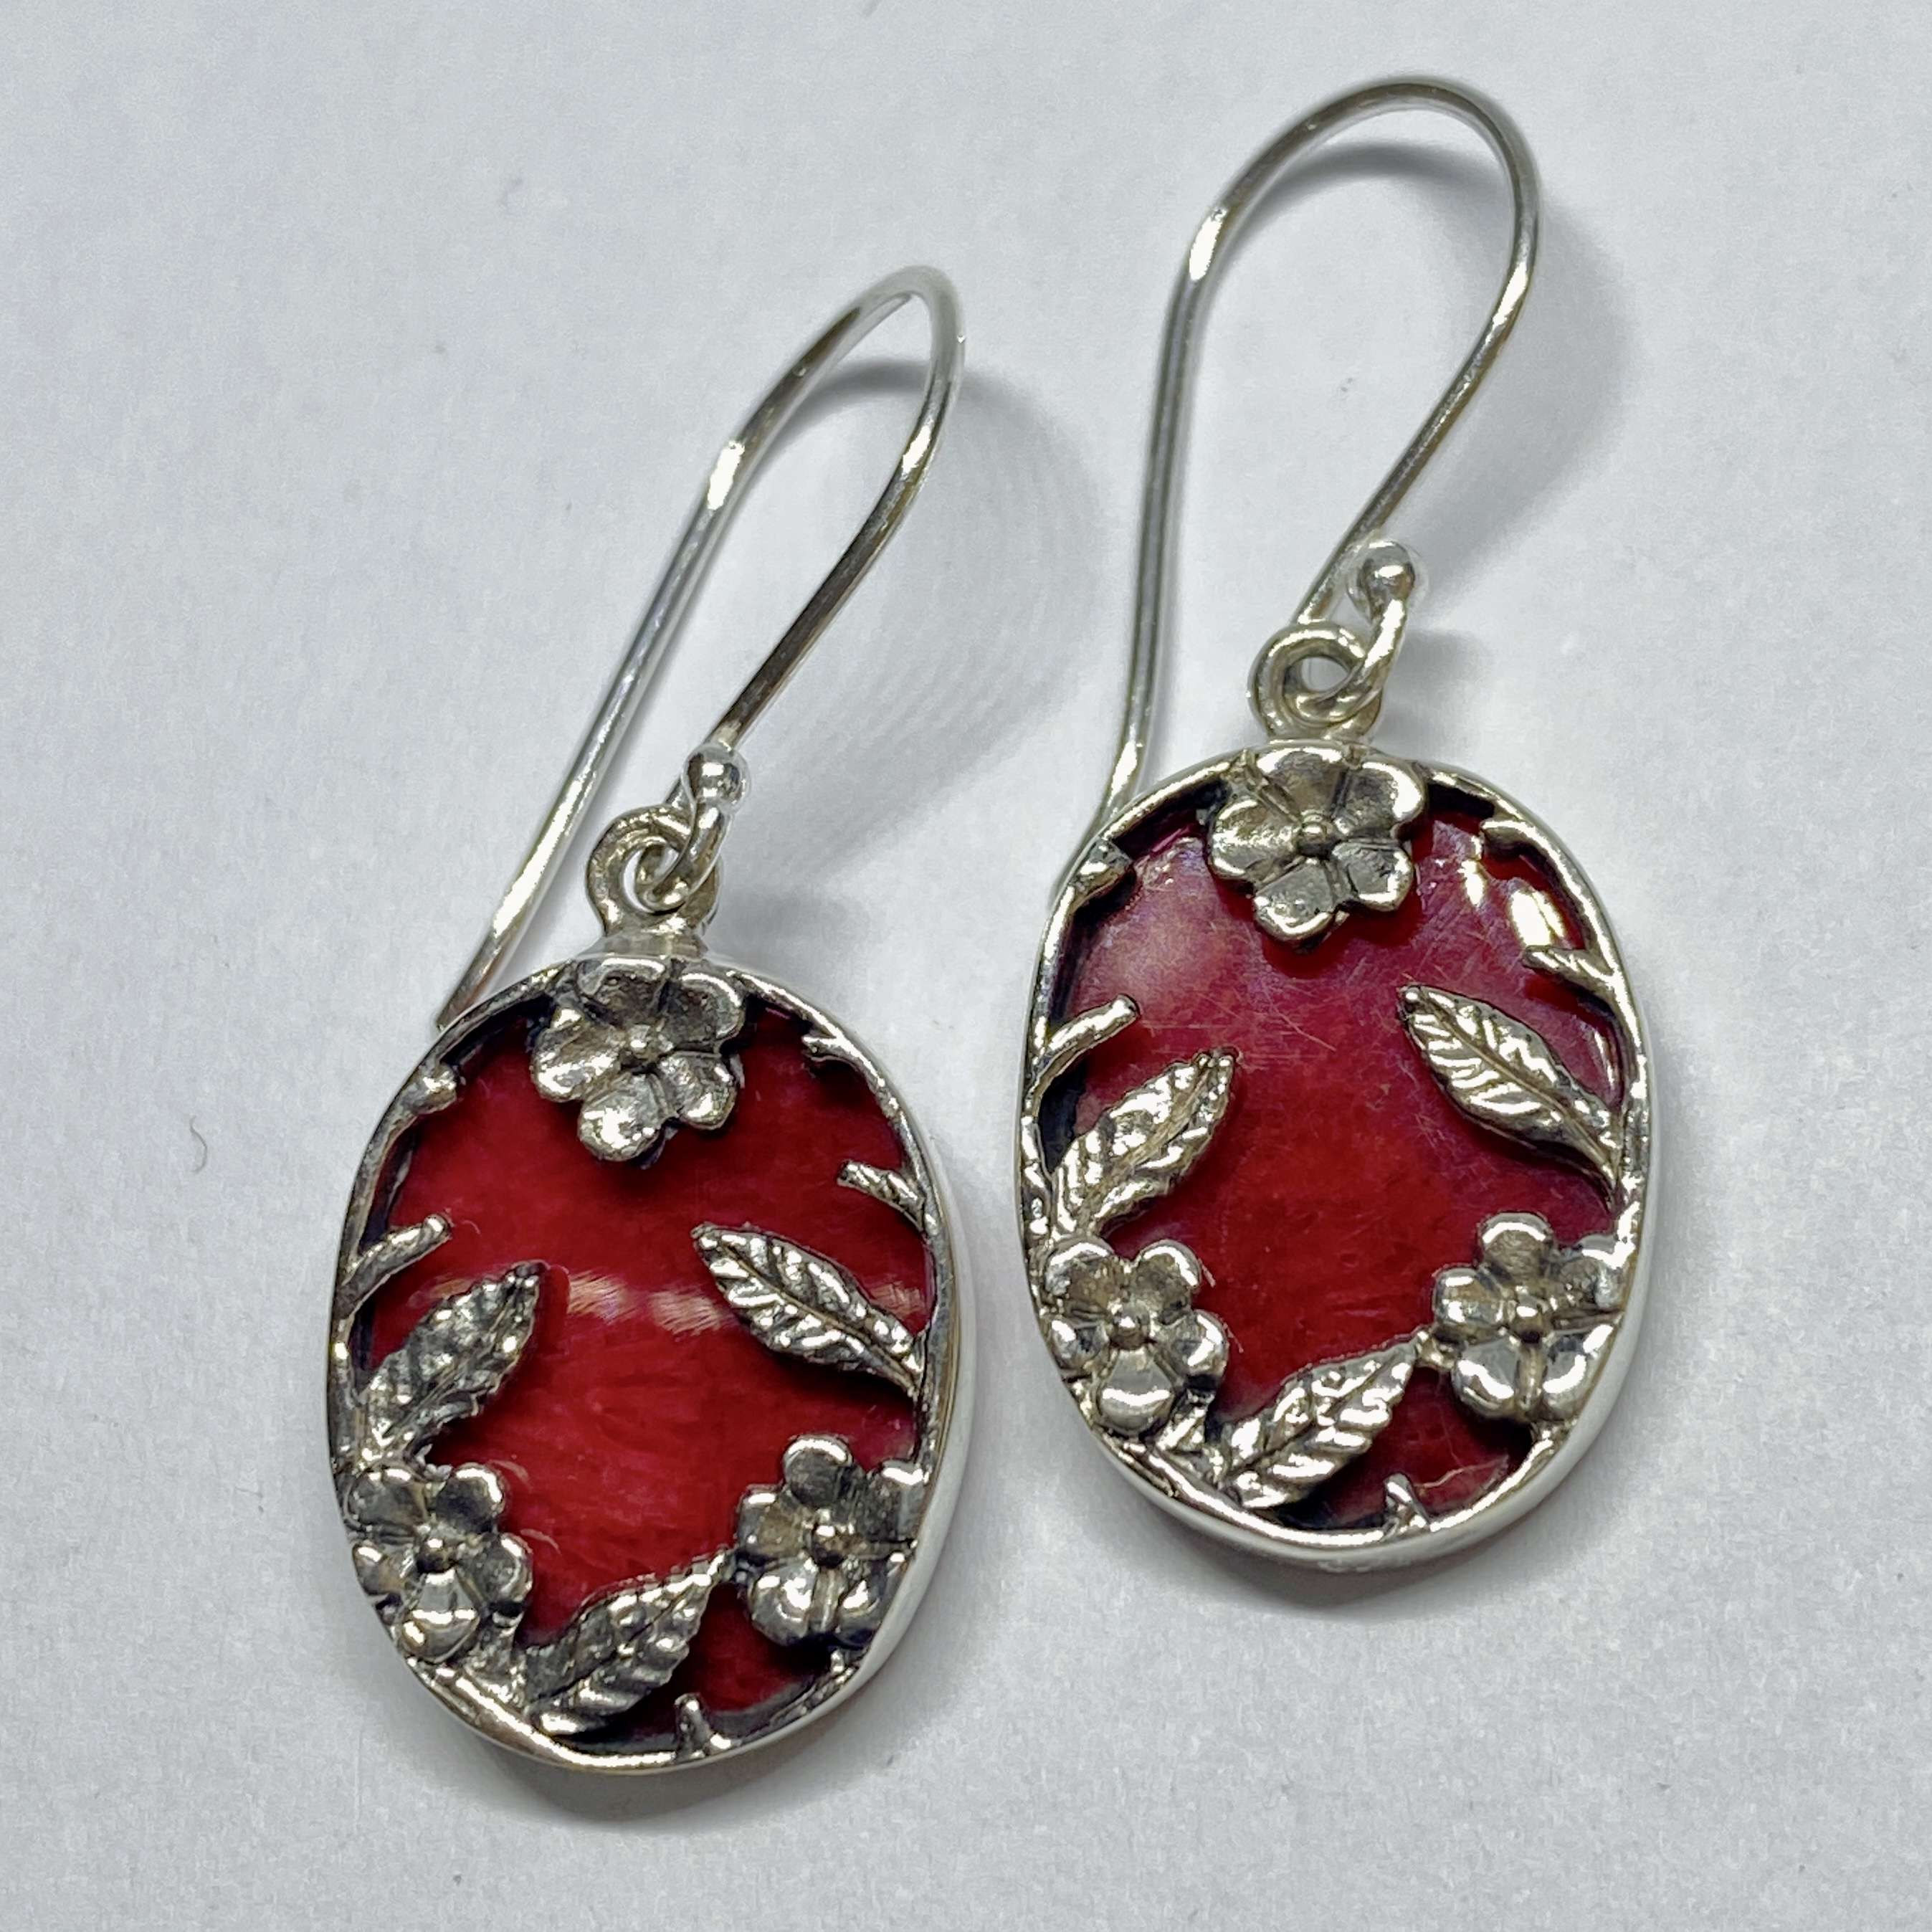 BALI 925 STERLING SILVER BIRD EARRINGS WITH CORAL